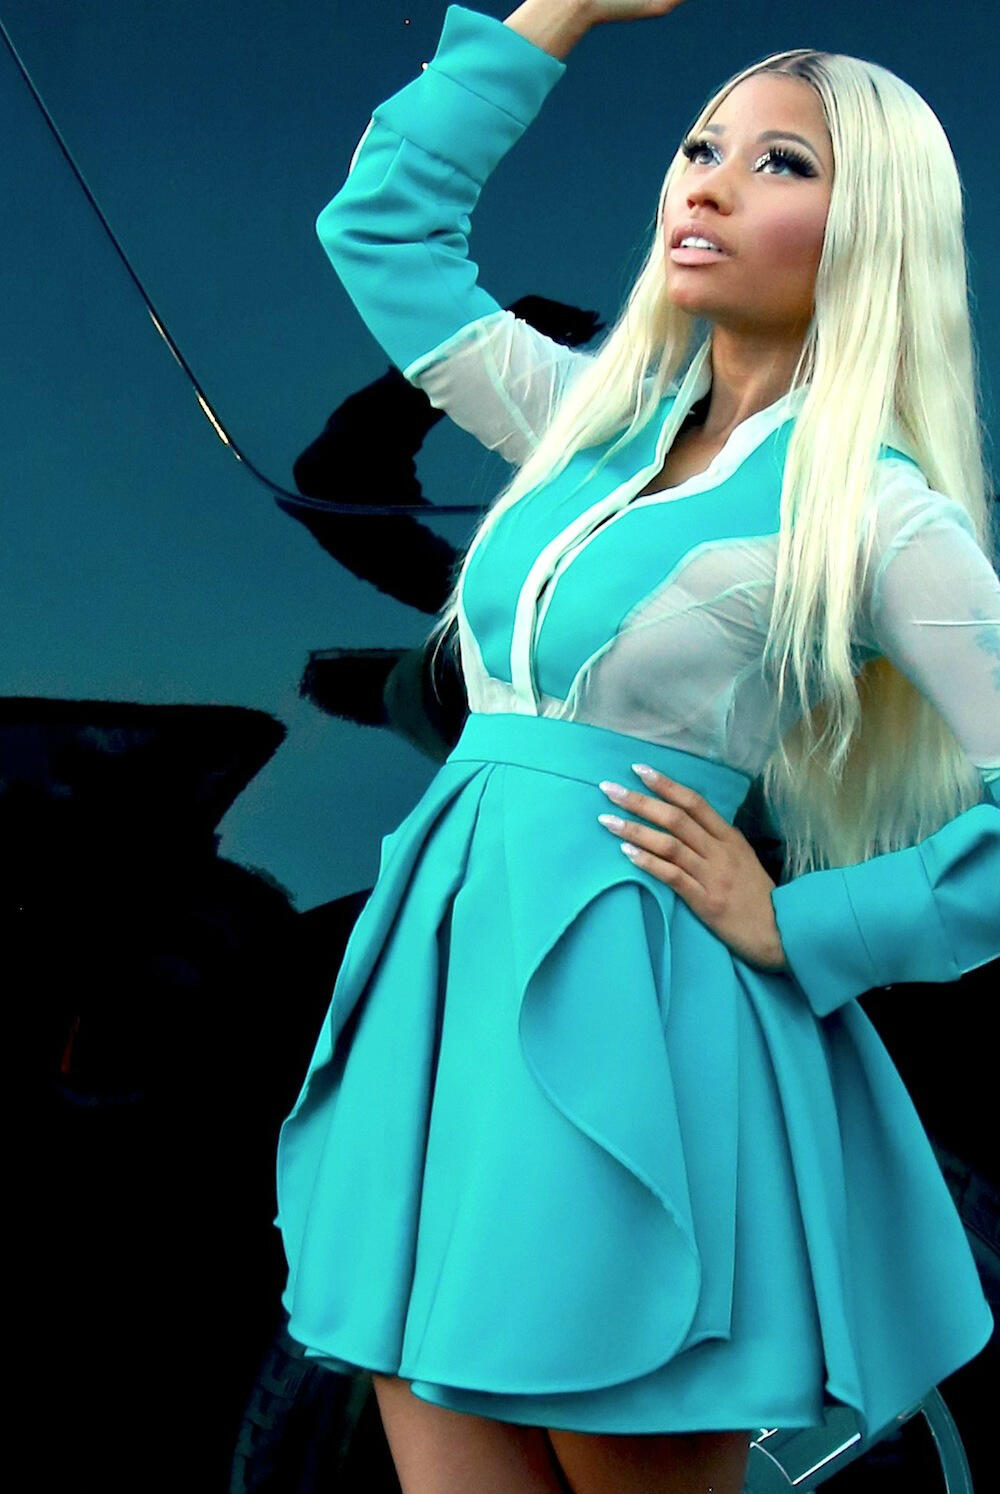 Image discographyg nicki minaj wiki fandom powered by wikia current 0011 december 9 2013 voltagebd Gallery